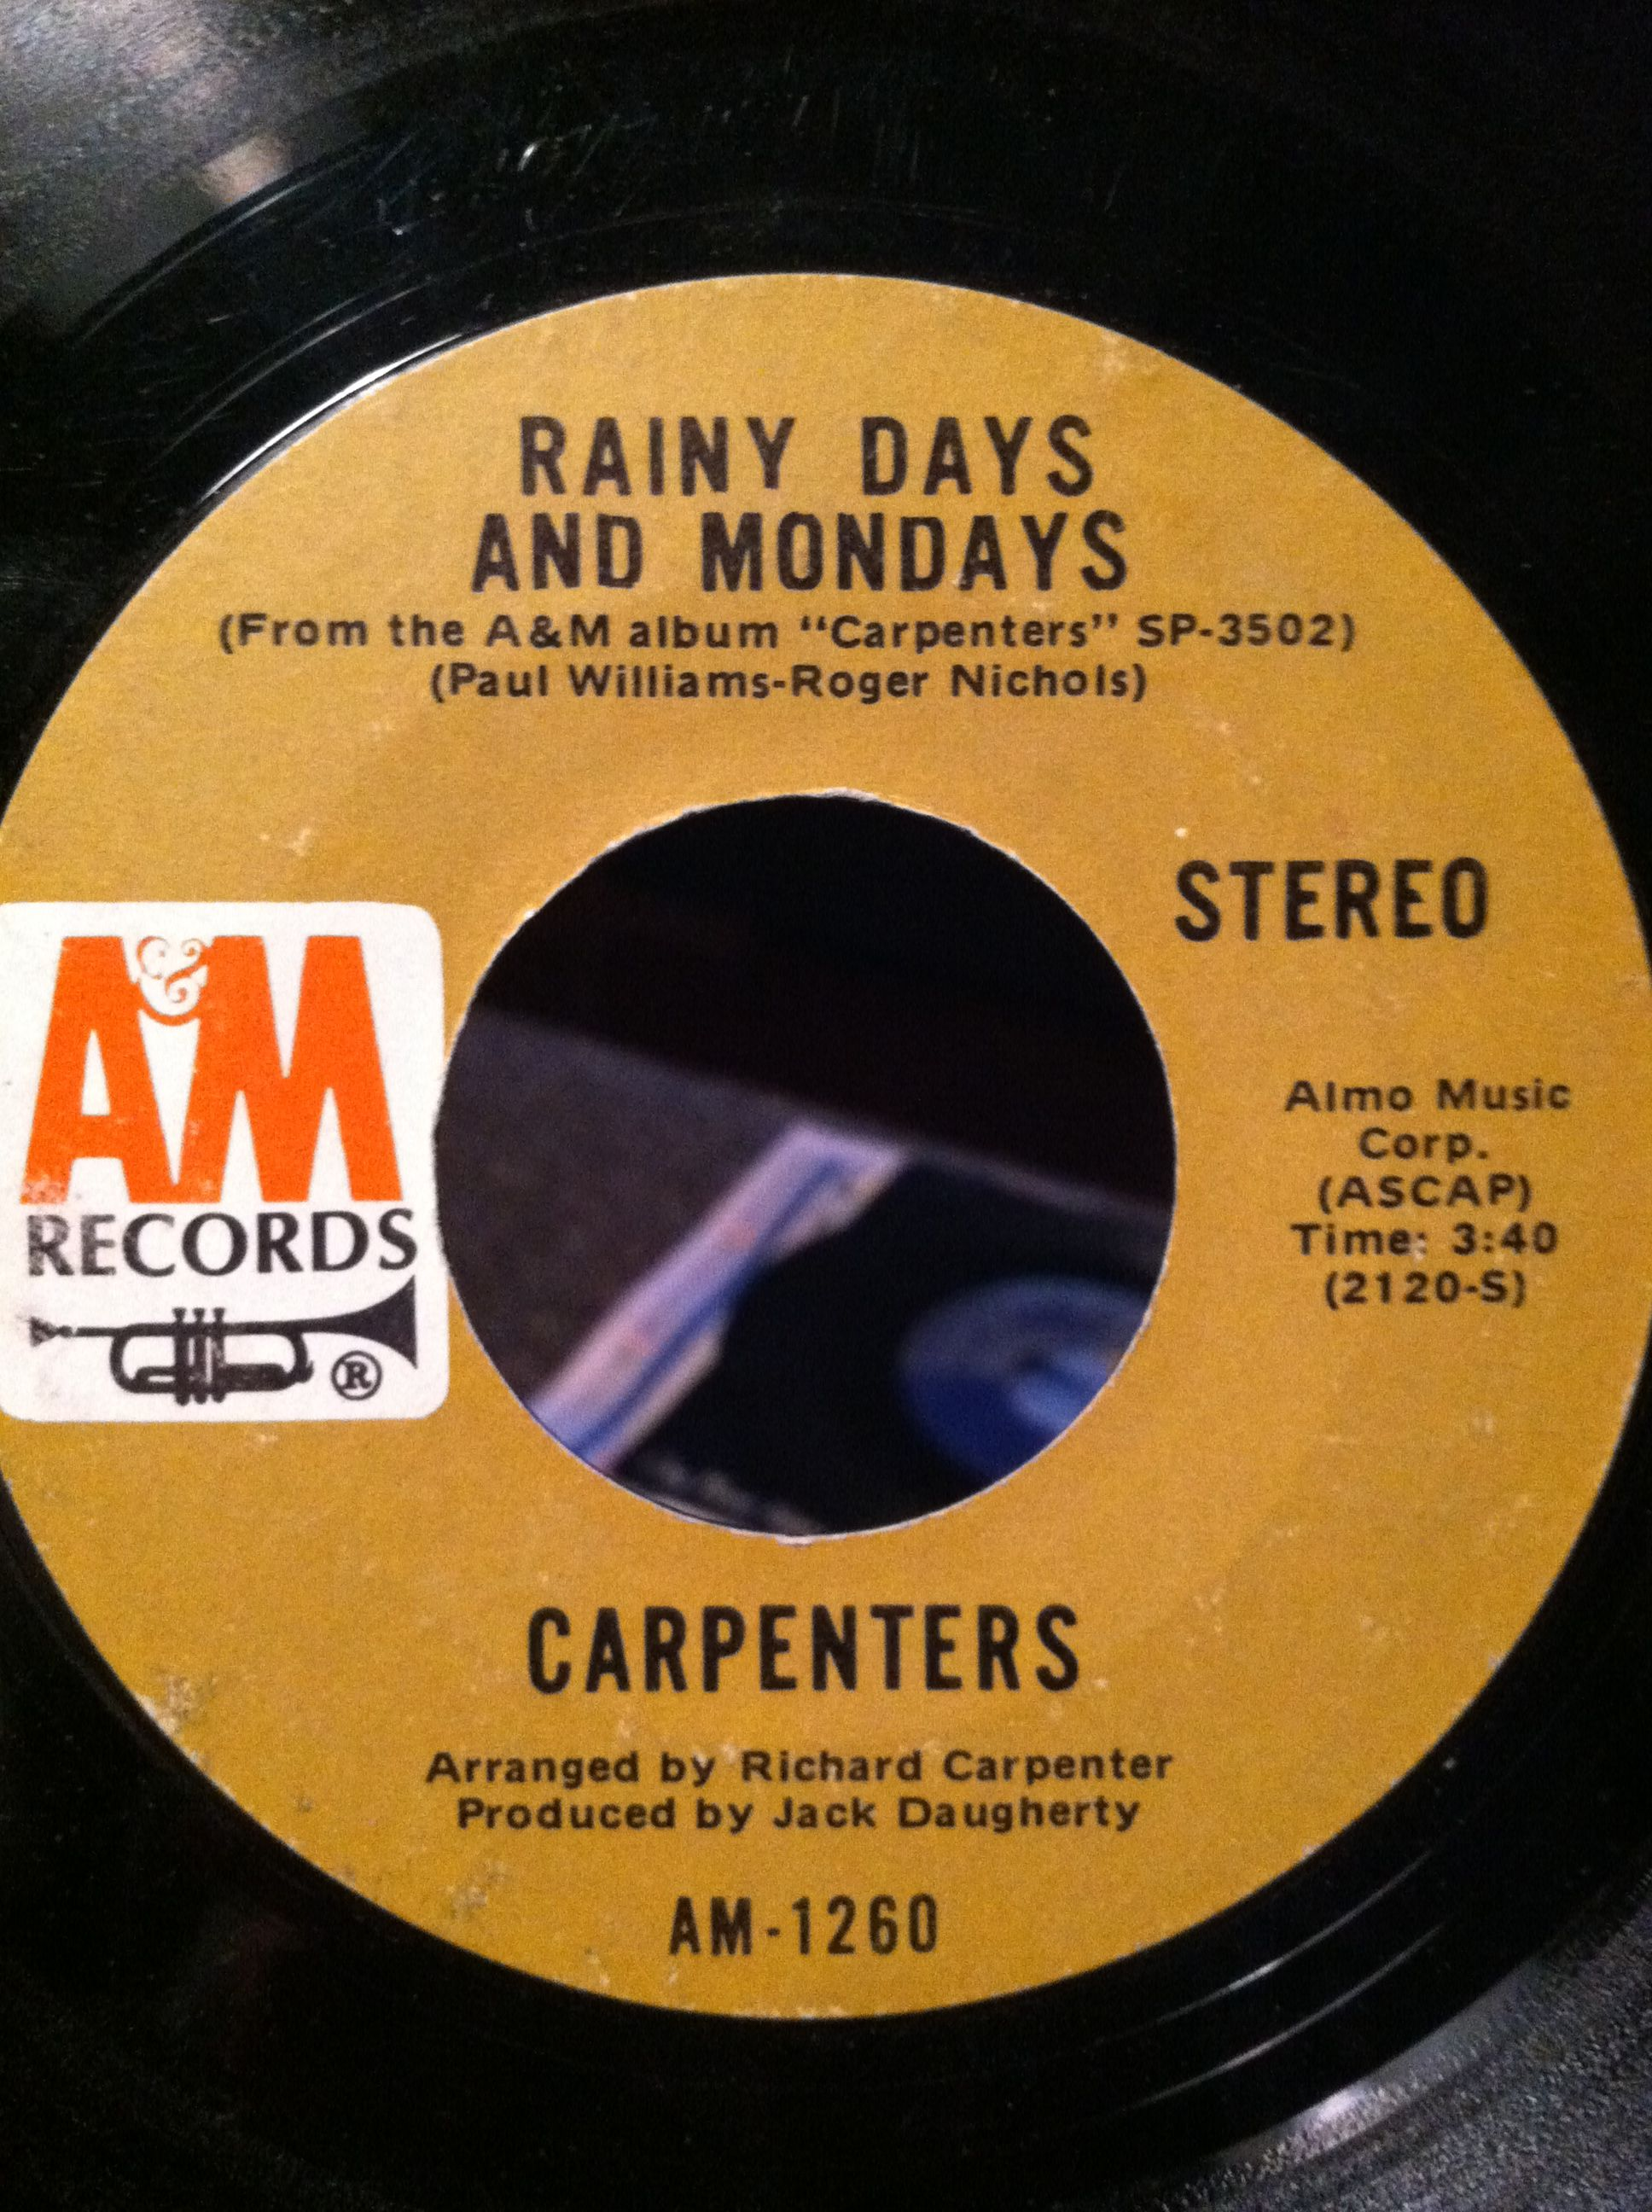 Carpenters On A Early 70 S Vinyl Records Songs Record Label